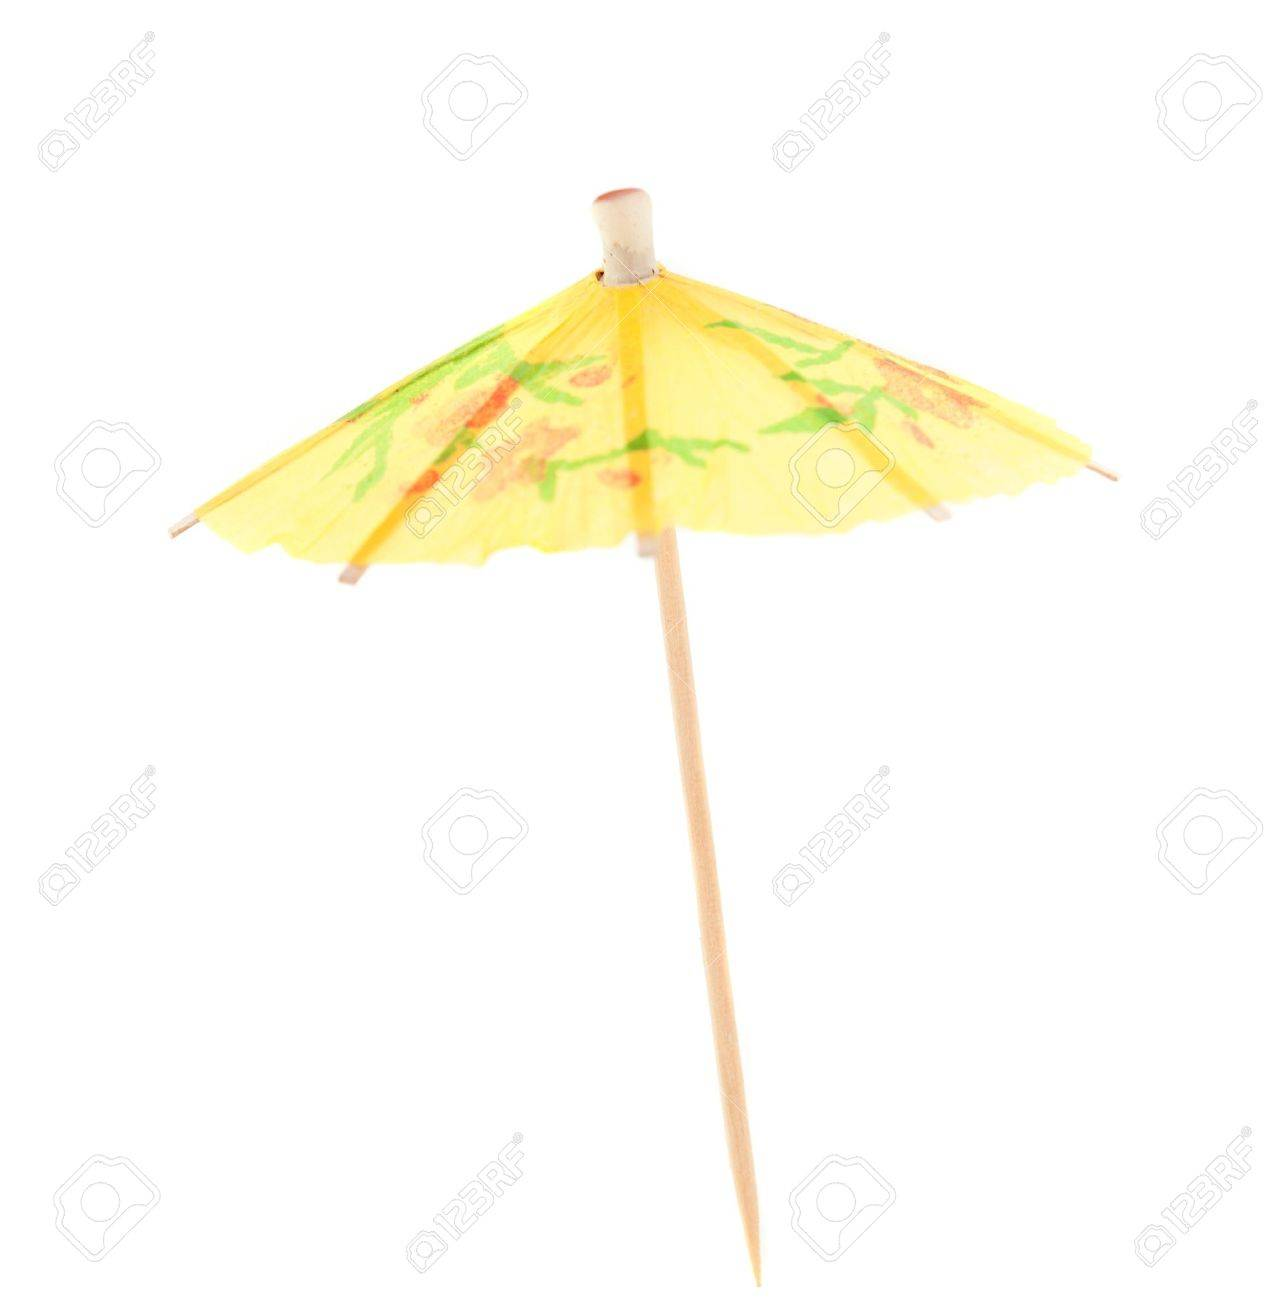 umbrella for cocktails on a white background stock photo picture